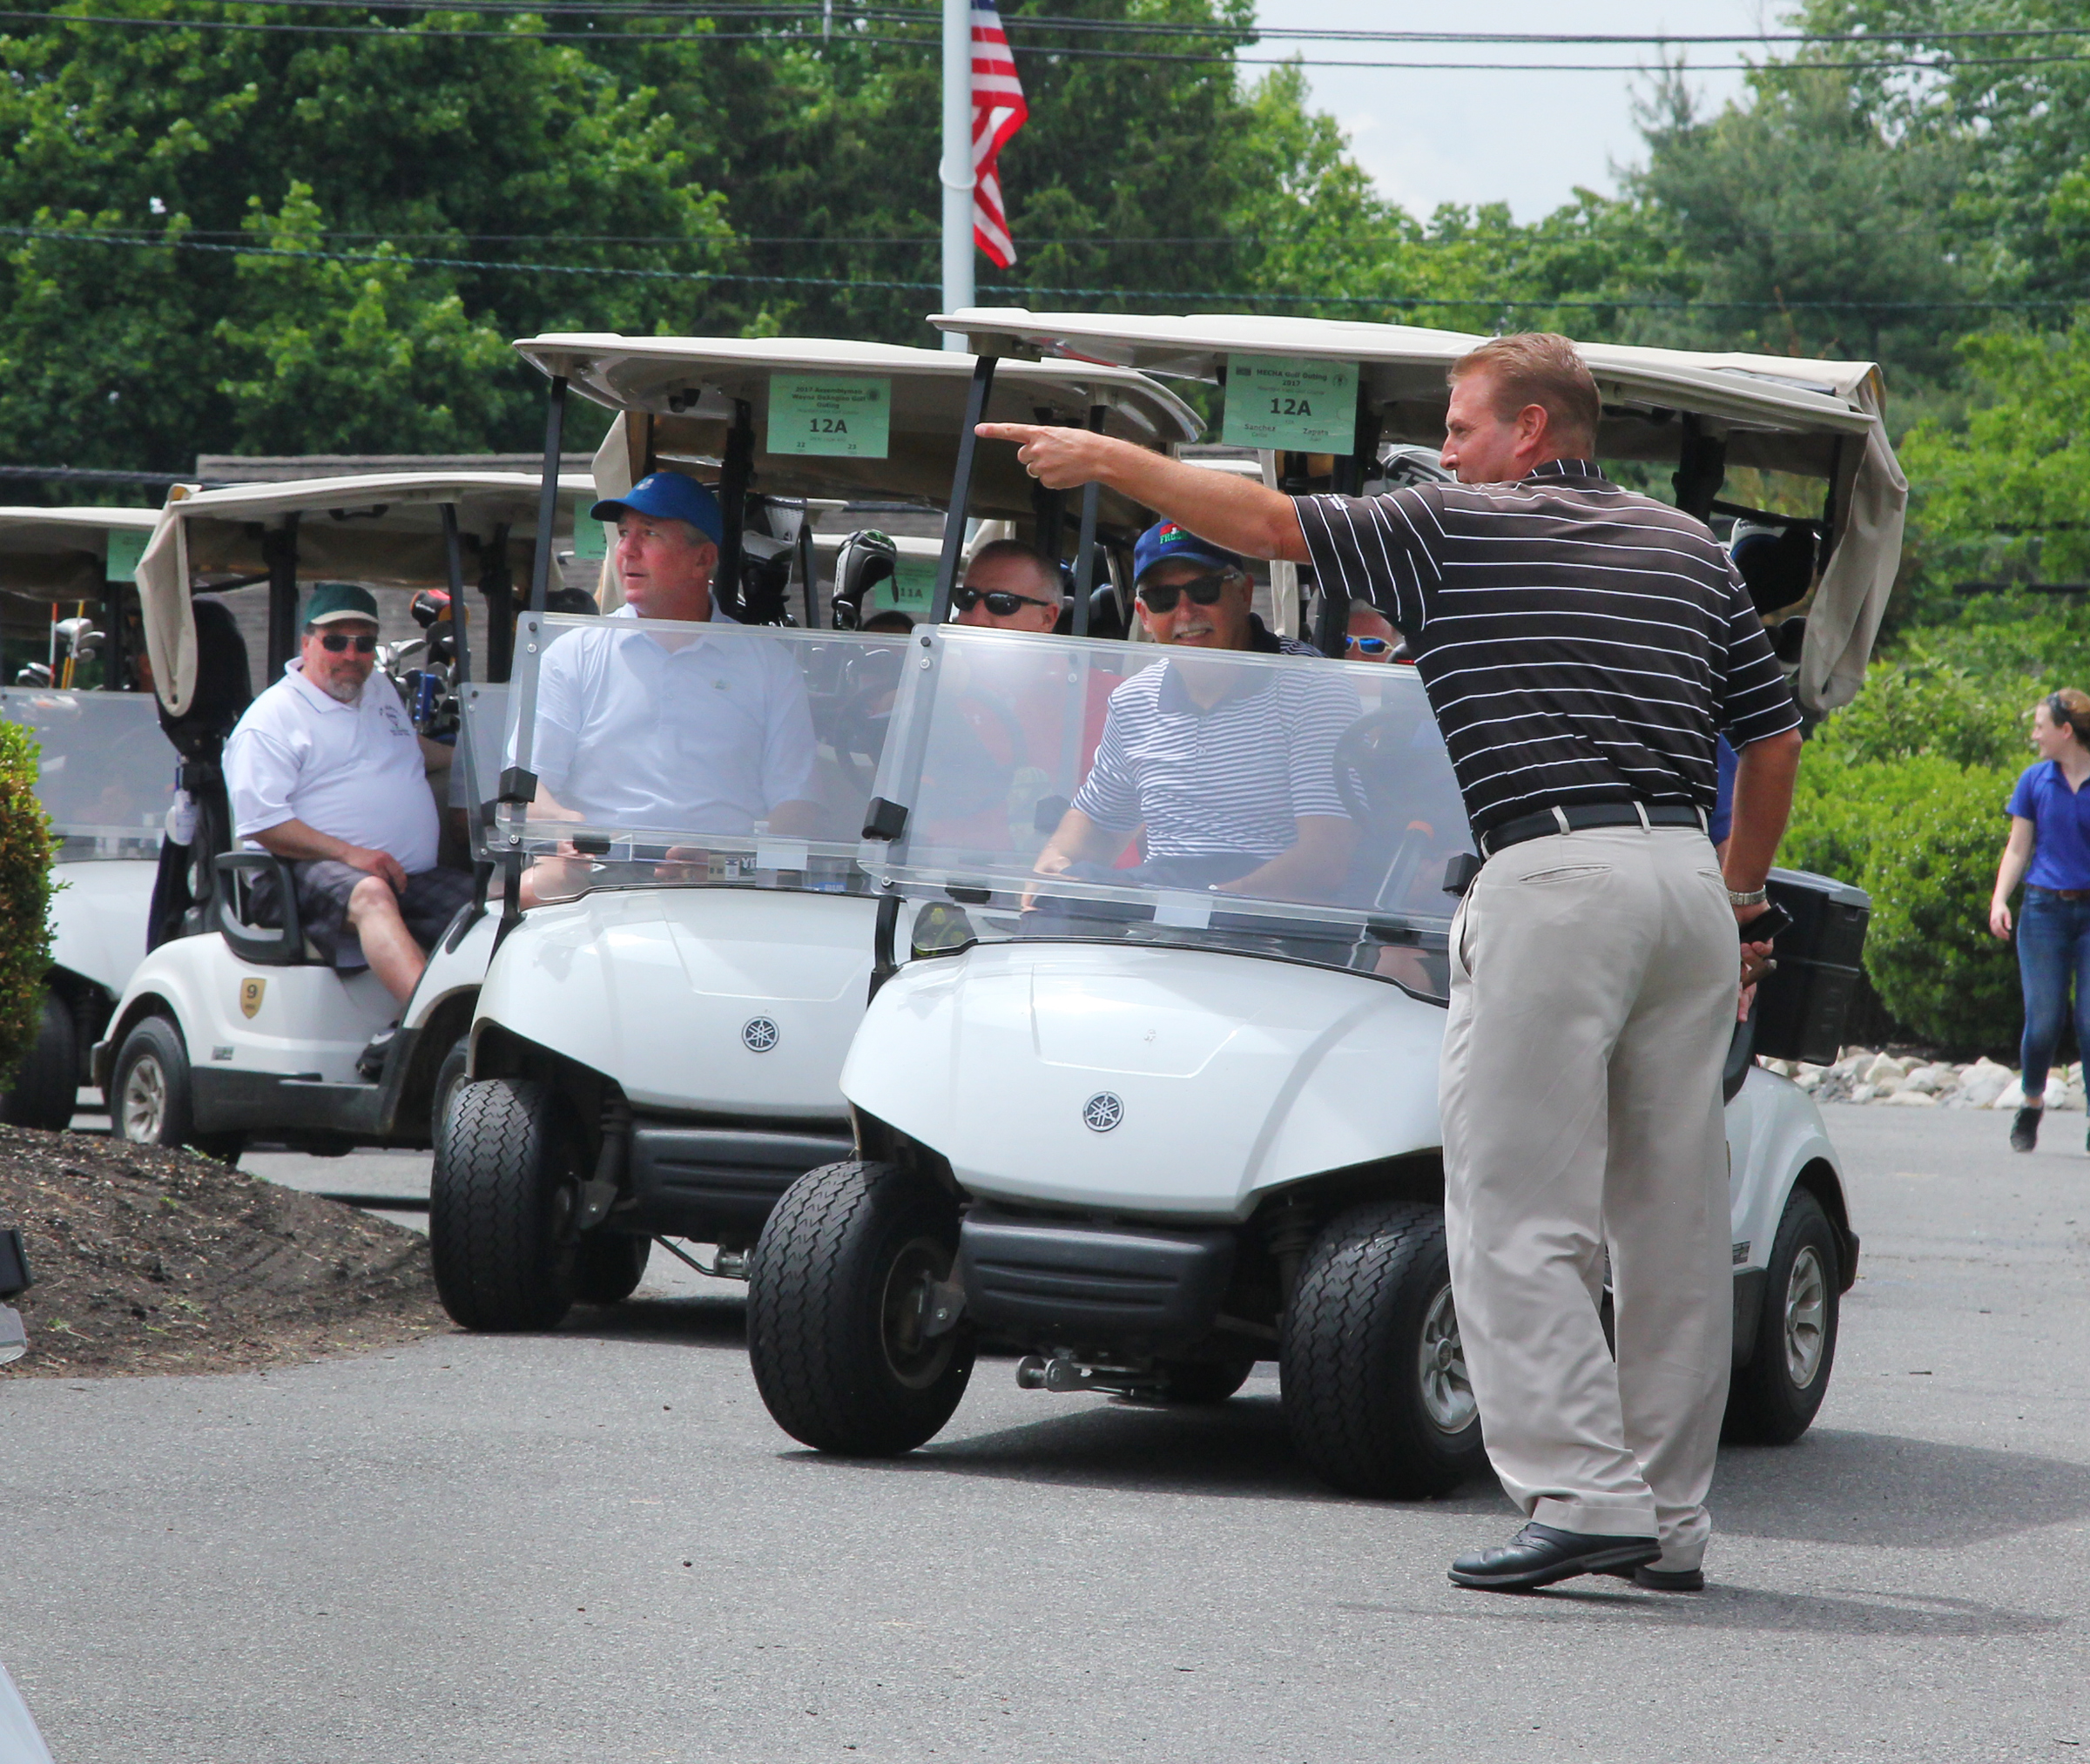 Wayne P. DeAngelo Golf Outing, May 24, 2017, Mountain View Golf Club. Very anxious and almost comical golfers race to their tees to start the outing as John Kostin, Mercer County Director of Golf Operations, points the way to the front nine